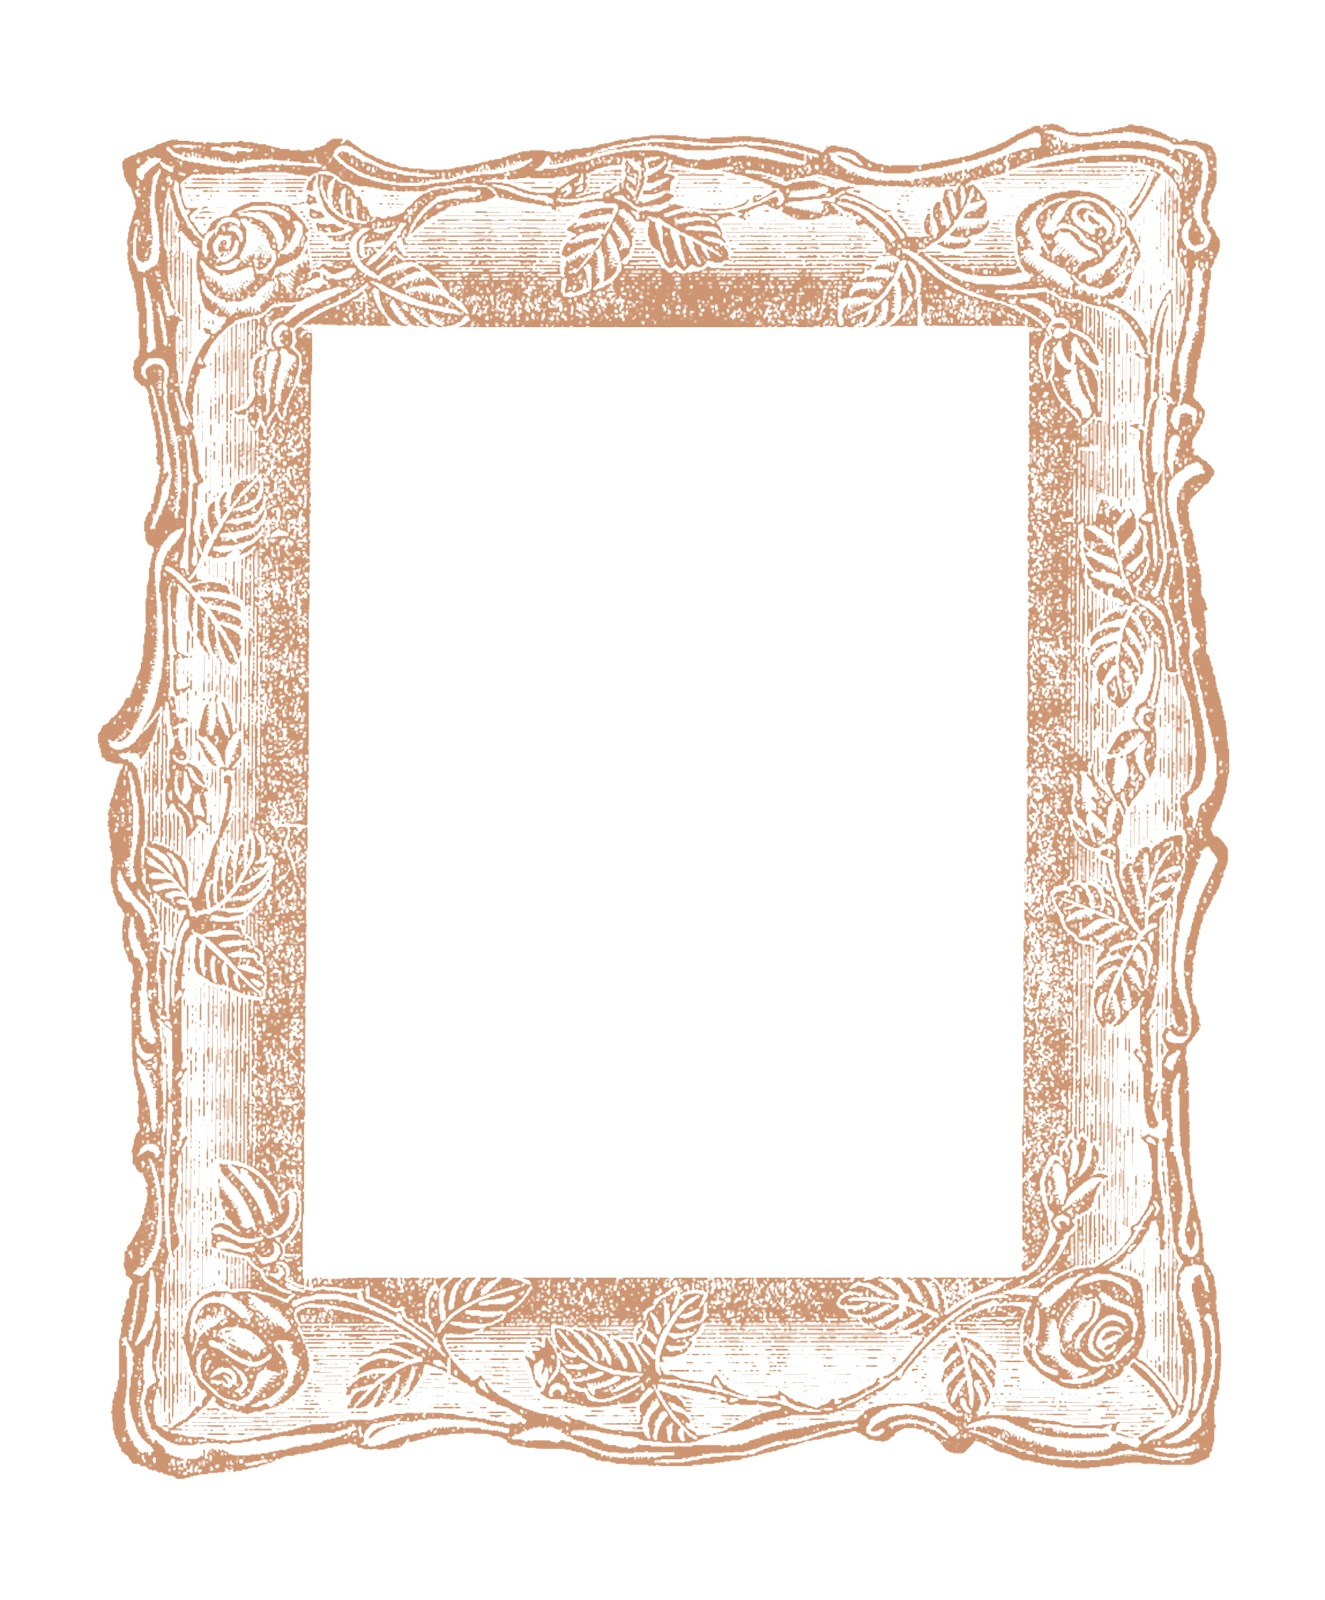 decorative clipart frames - photo #6